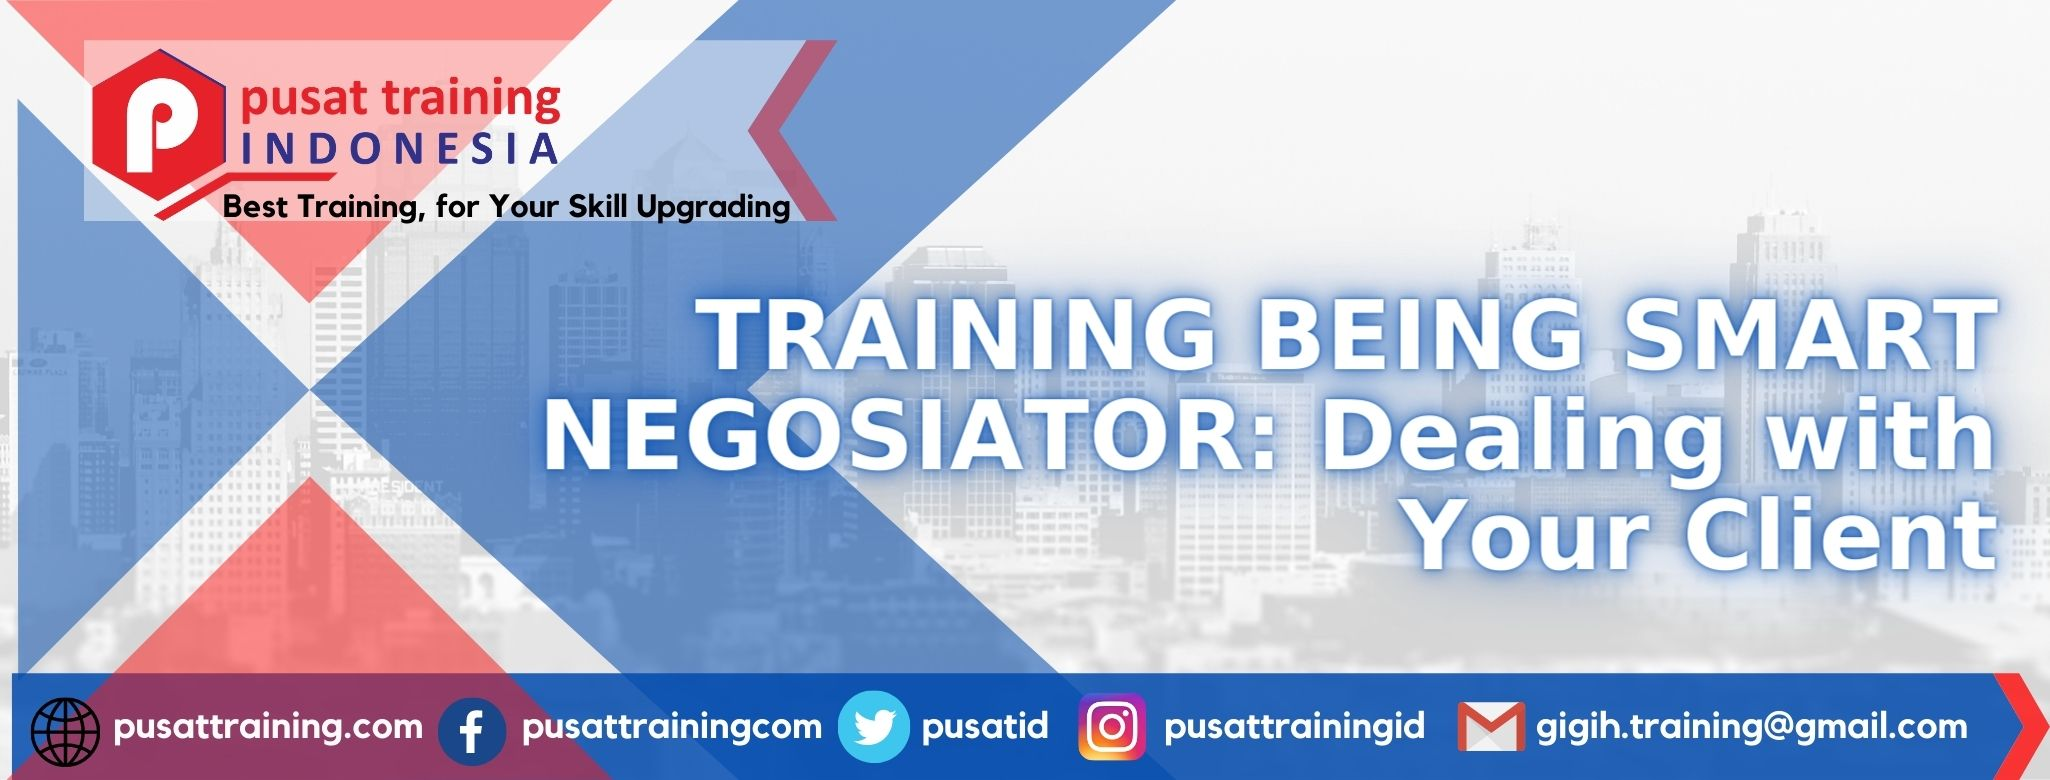 training-being-smart-negosiator-dealing-wiyh-your-client